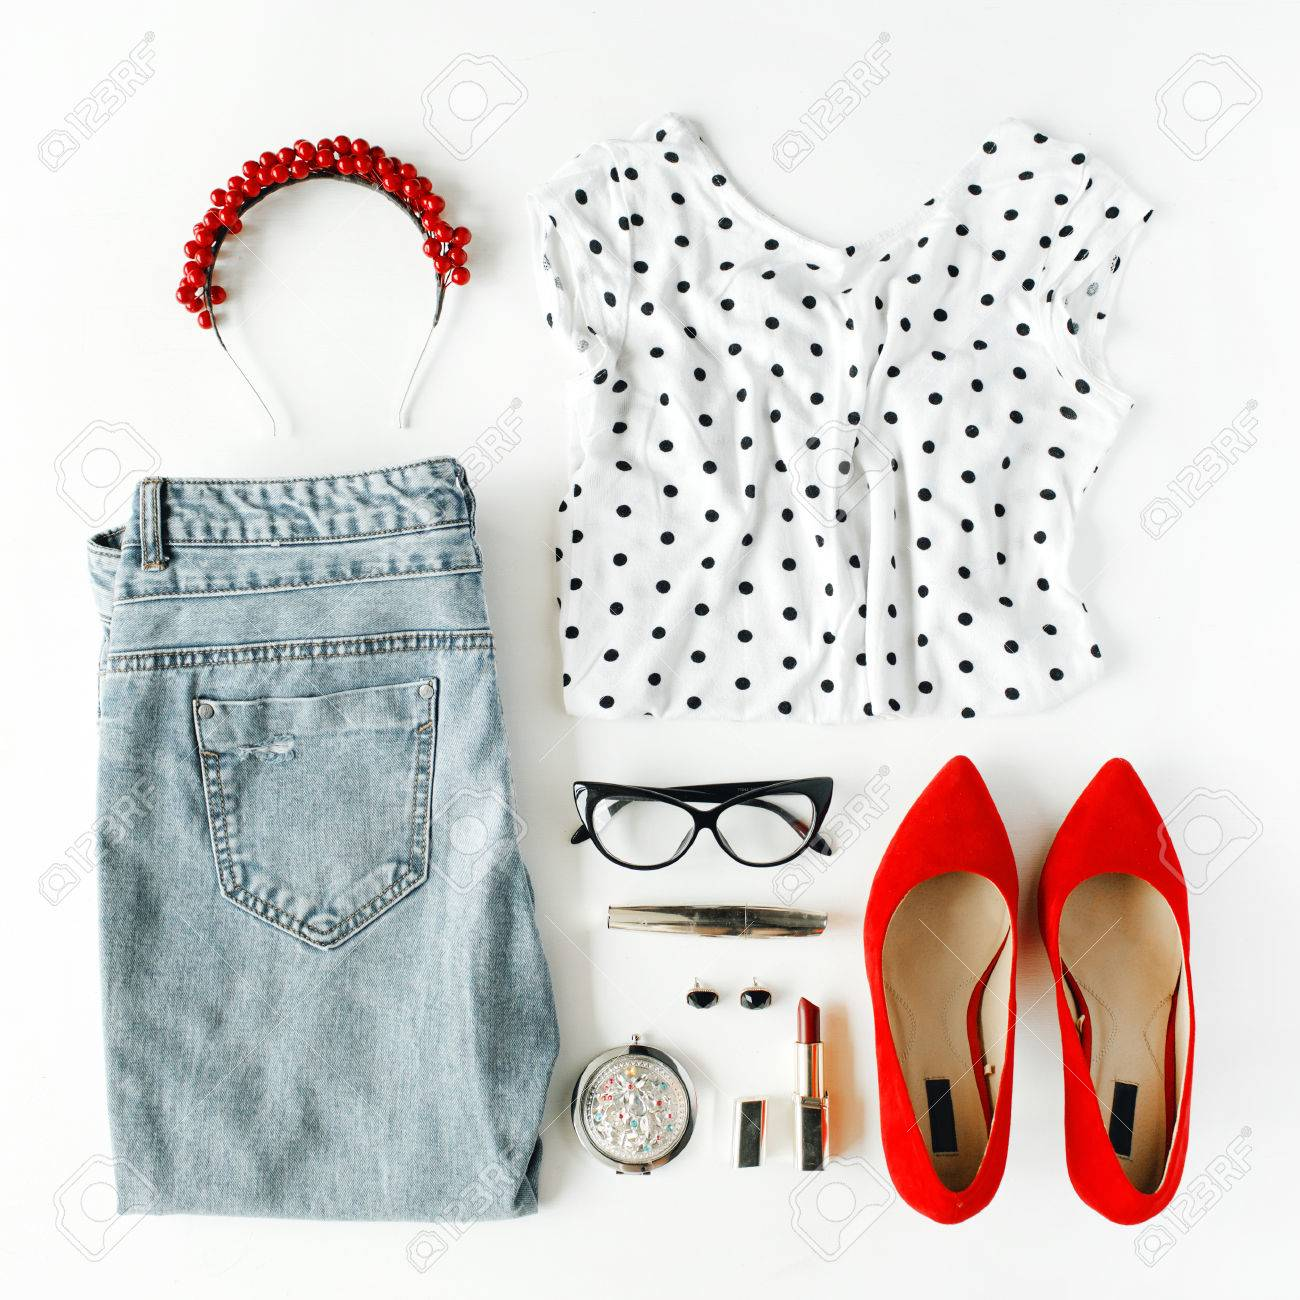 9fee11a8b974 flat lay feminine clothes and accessories collage with shirt, jeans,  glasses, mascara,